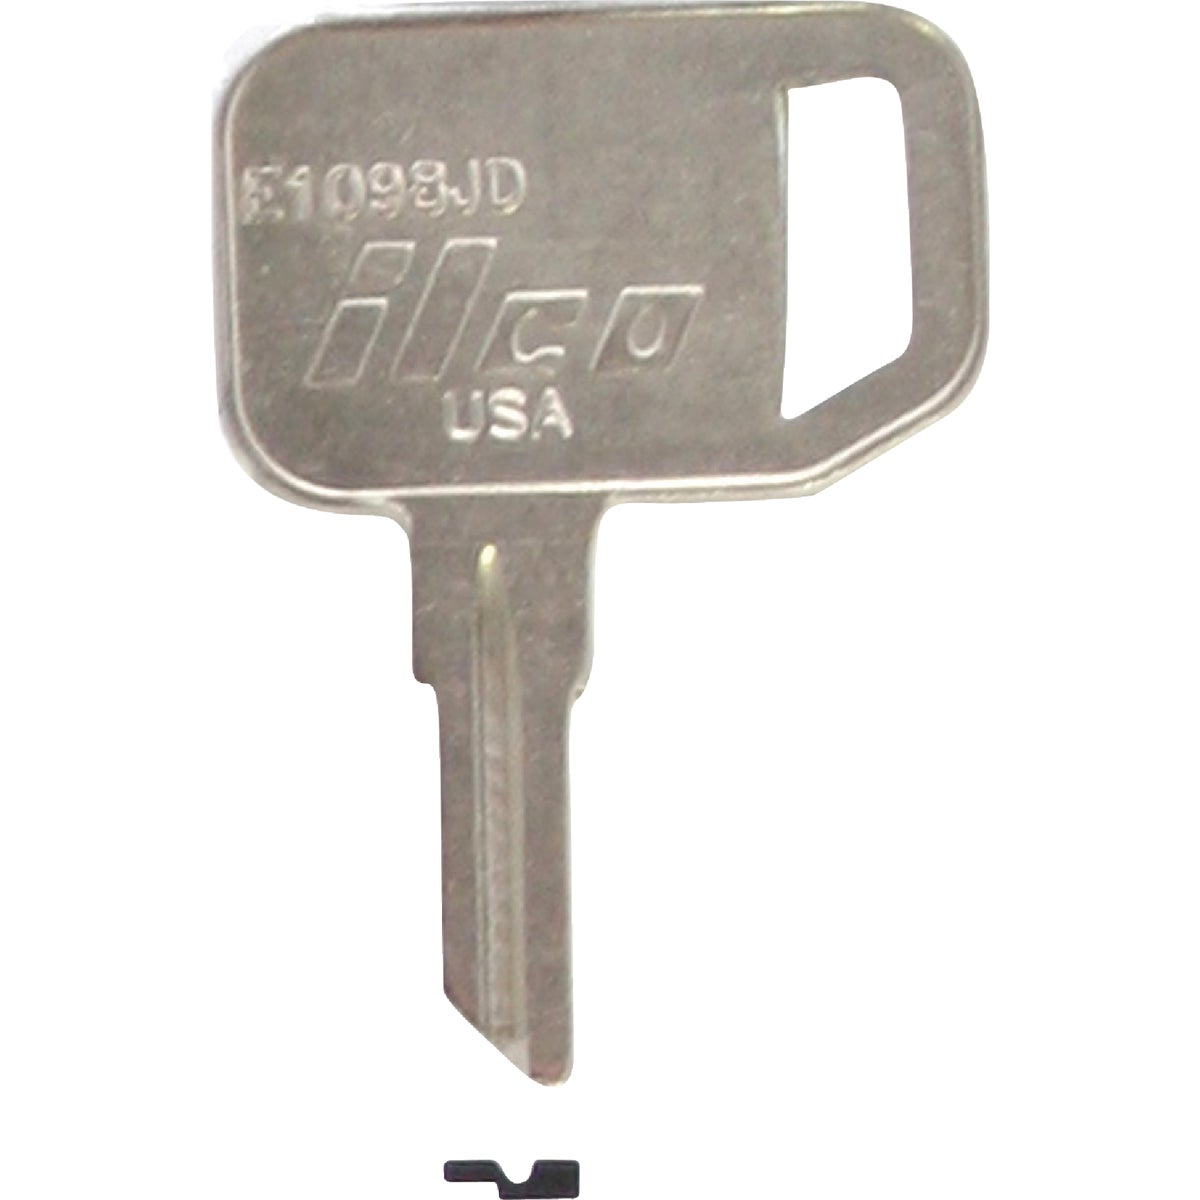 E1098JD JOHN DEERE KEY - E1098JD by Ilco Corp